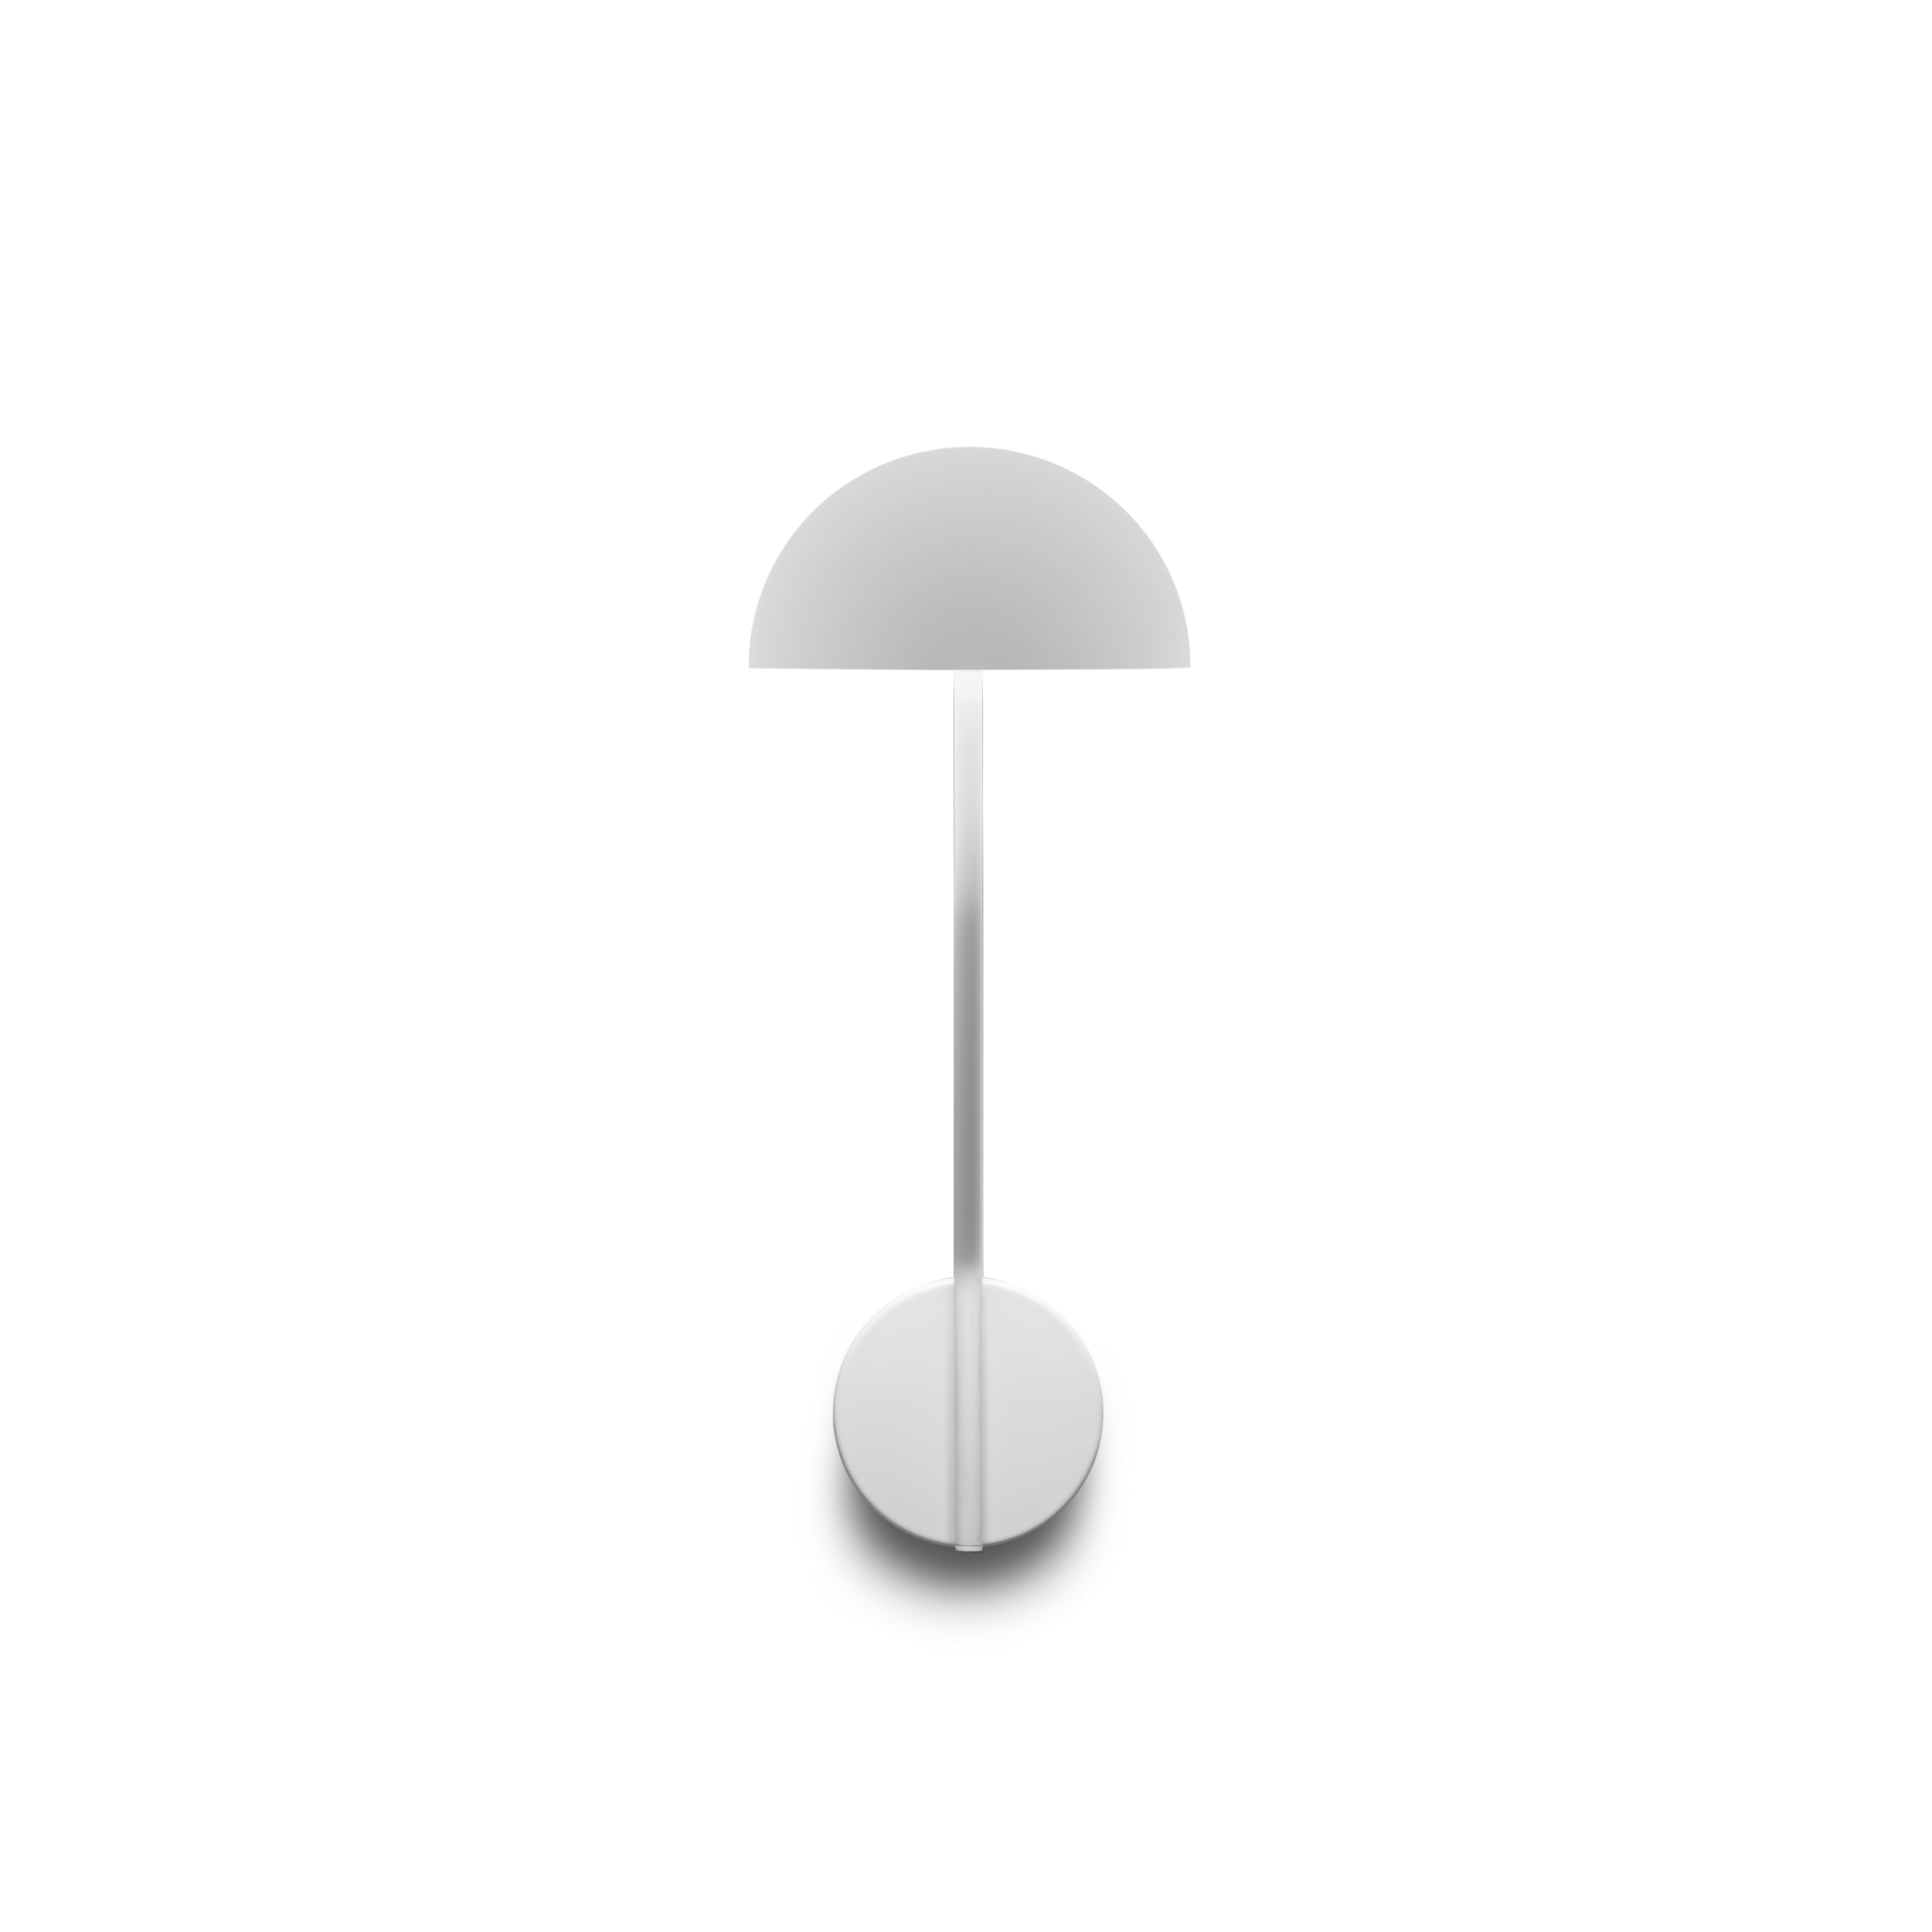 Aplica LED design minimalist PURE alba